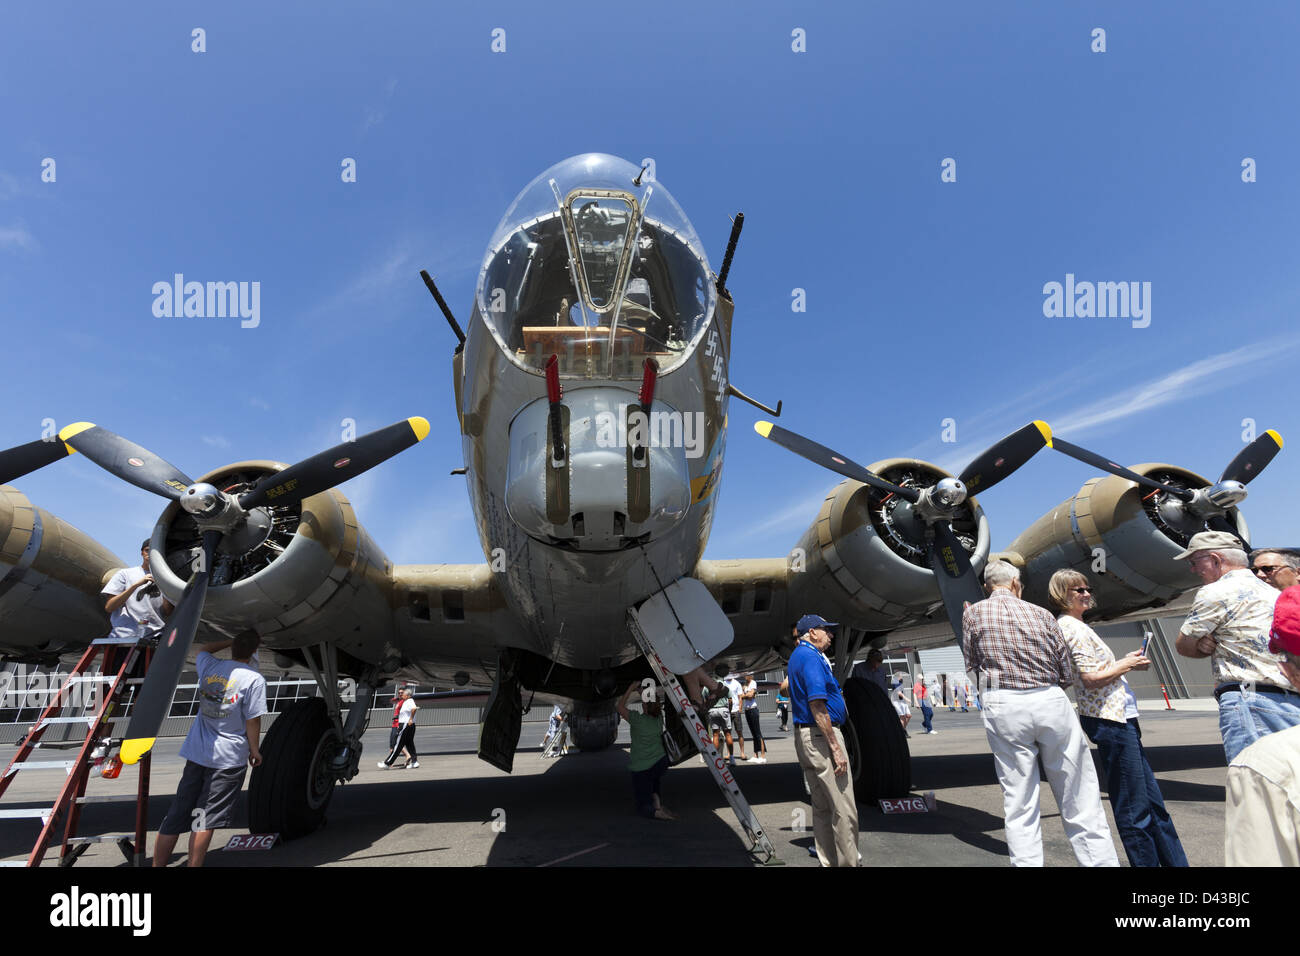 """Boeing B-17 Flying Fortress """"Nine O Nine"""" WWII Heavy Bomber Lyon Air Museum May 2012 - Stock Image"""